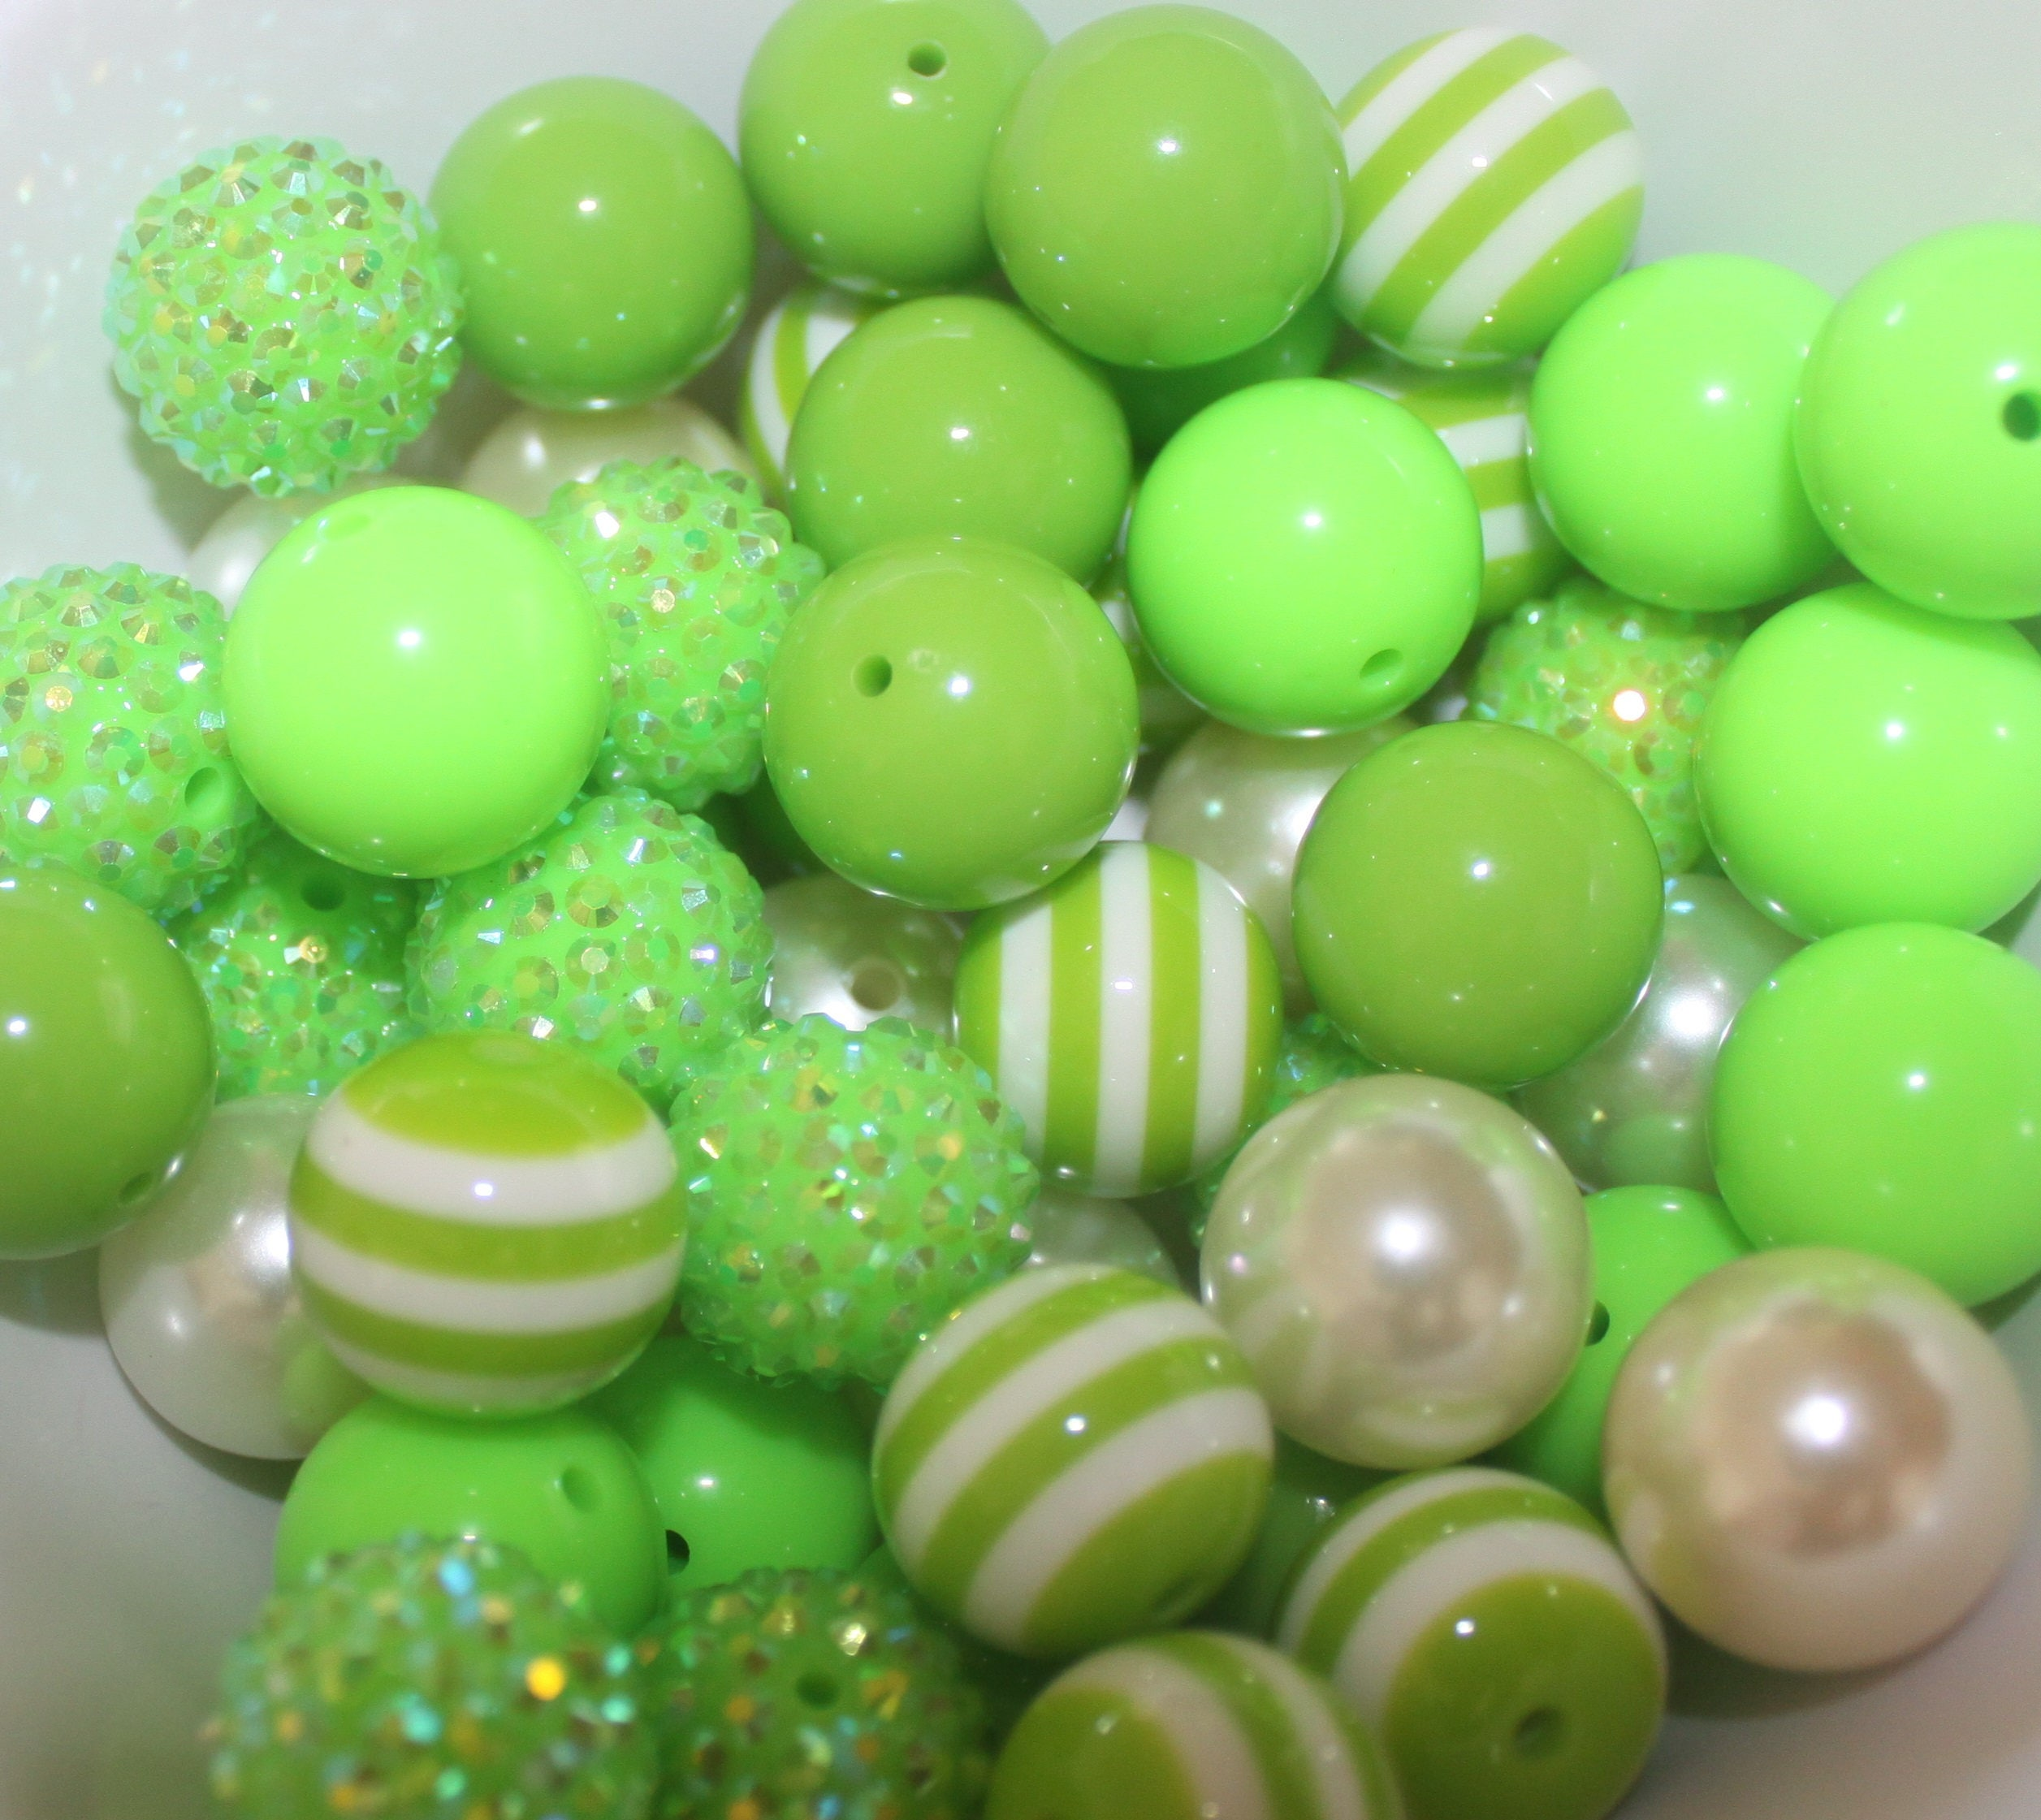 20mm Bead Beads: 50 Bead Mix Lime Green 20mm Beads